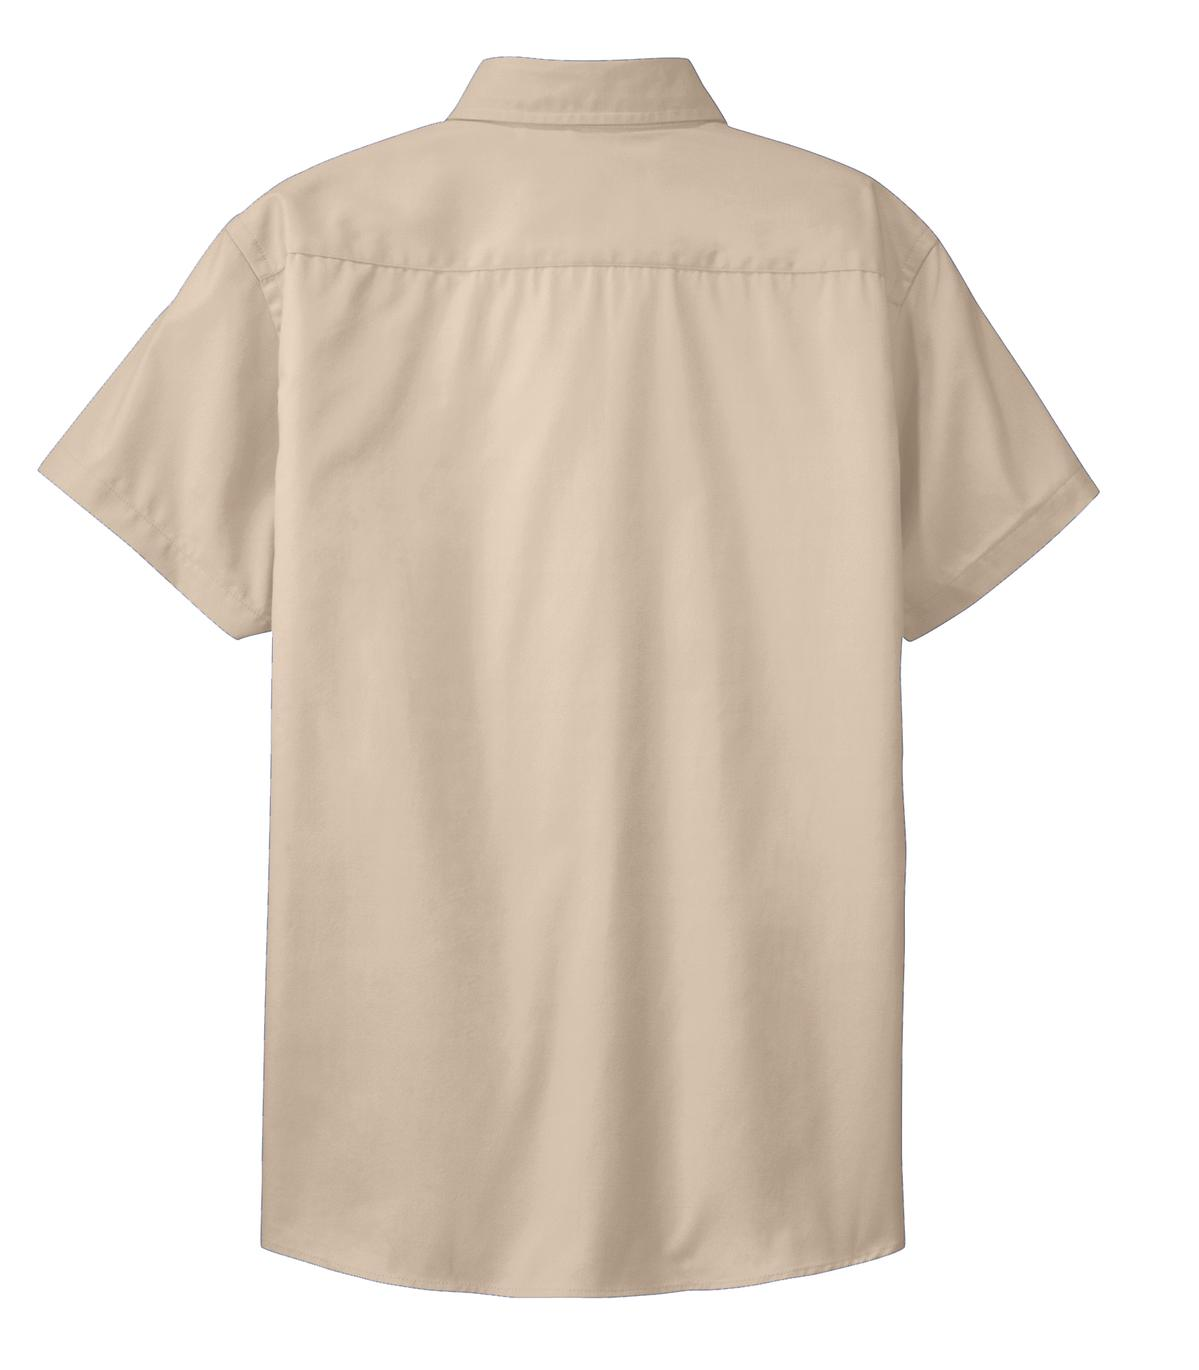 Mafoose Women's Comfortable Short Sleeve Easy Care Shirt Stone-Back